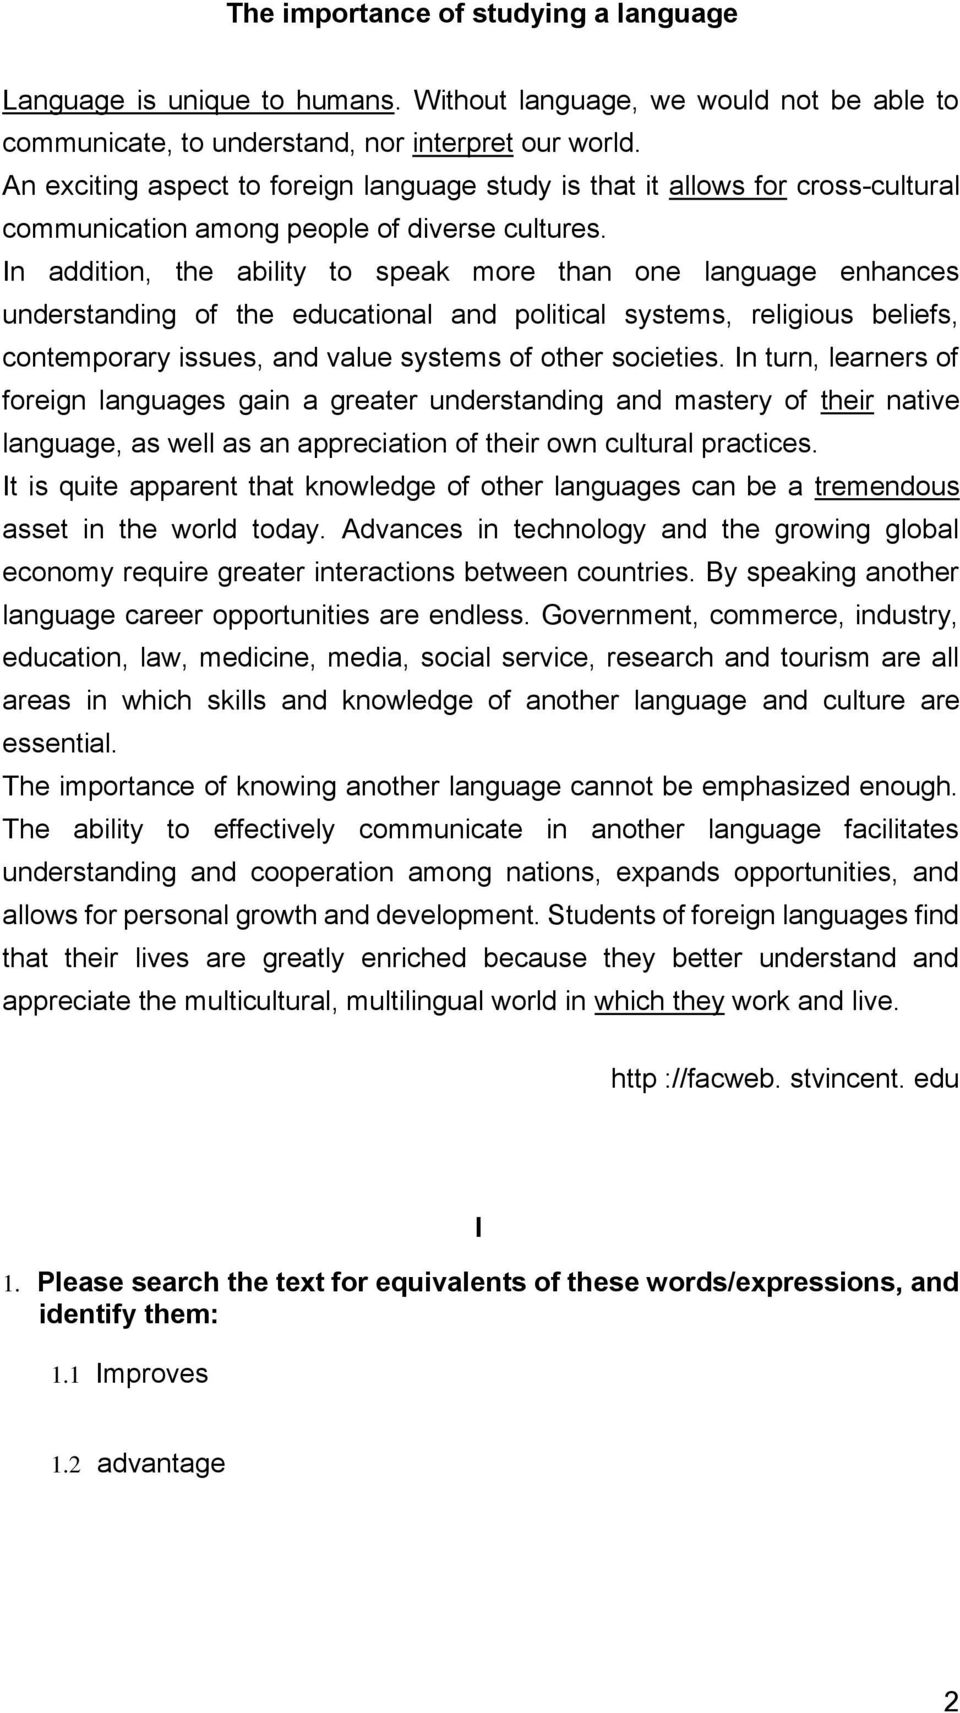 In addition, the ability to speak more than one language enhances understanding of the educational and political systems, religious beliefs, contemporary issues, and value systems of other societies.